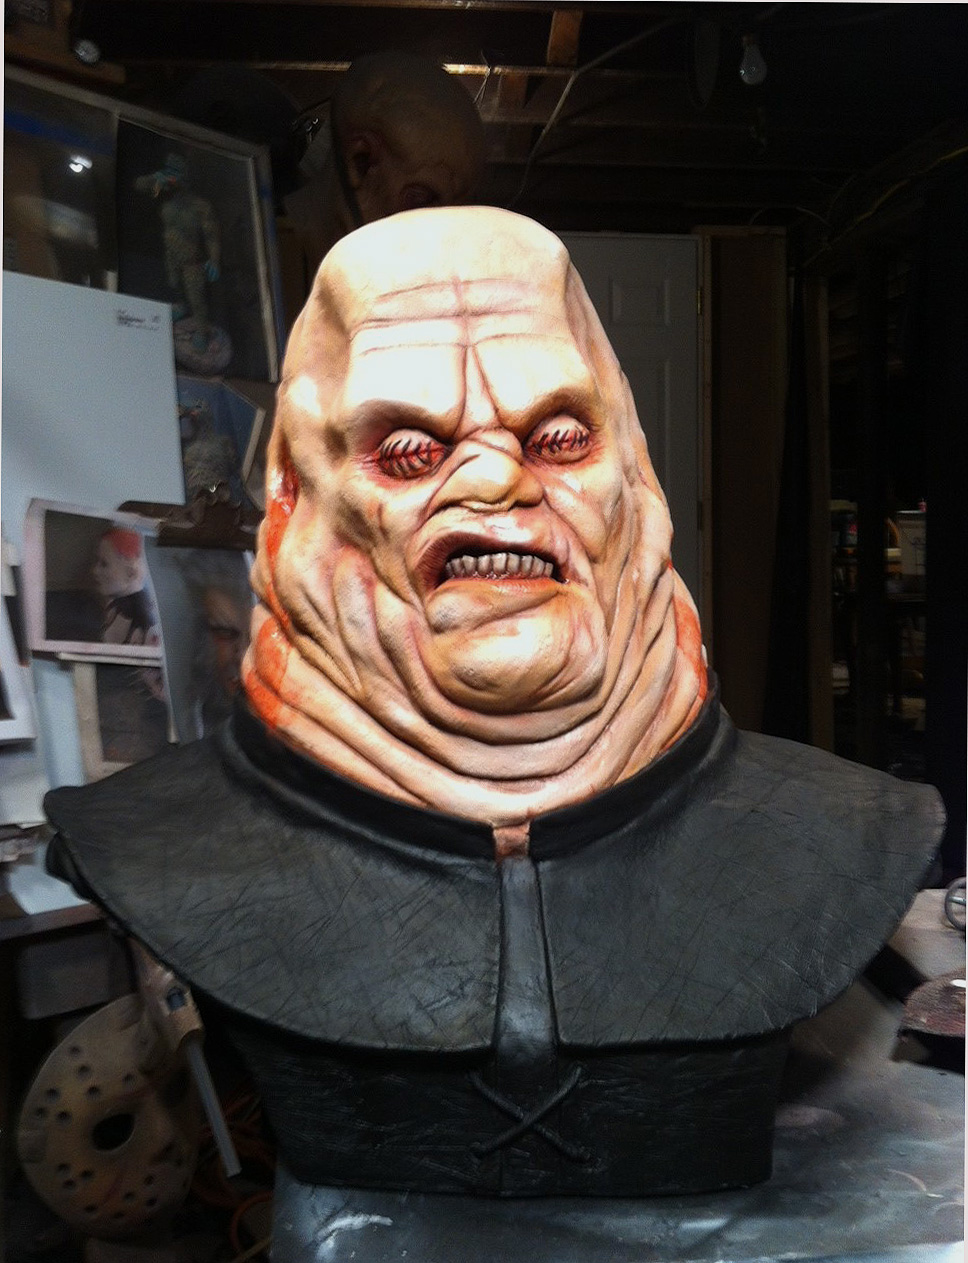 hellraiser butterball cenobite bust by gabrielxmarquez on